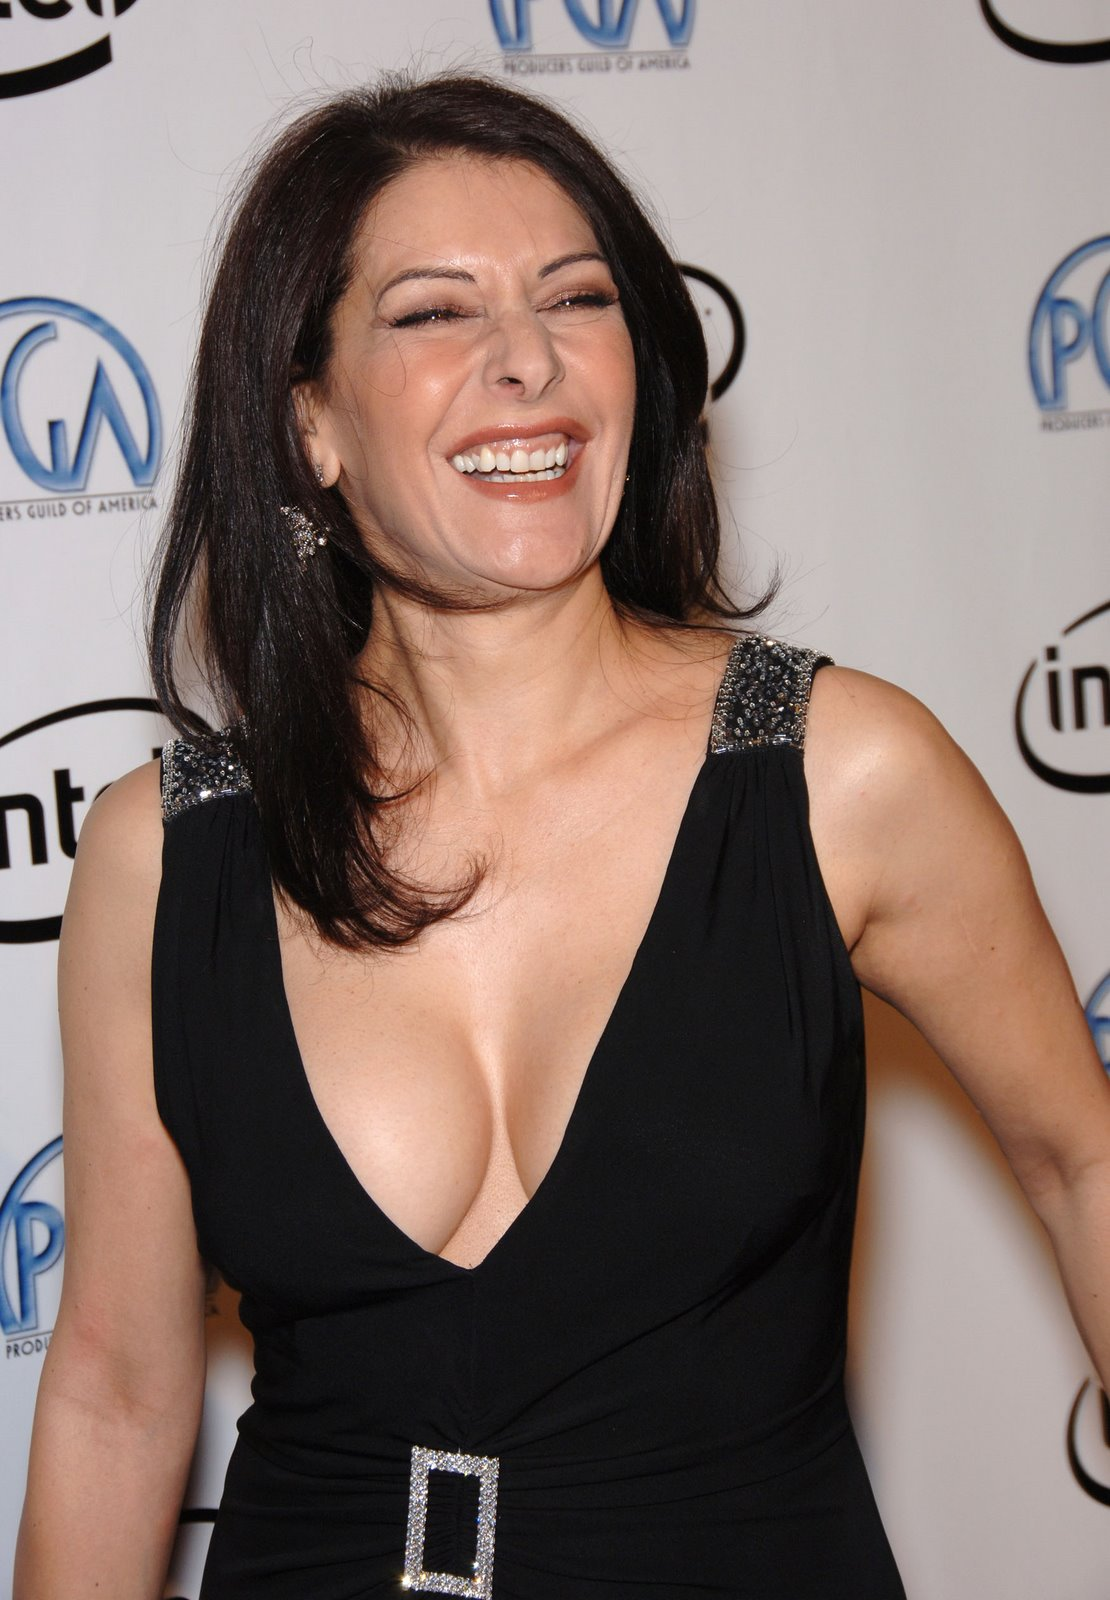 Sideboobs Marina Sirtis (born 1955 (naturalized American citizen) naked photo 2017